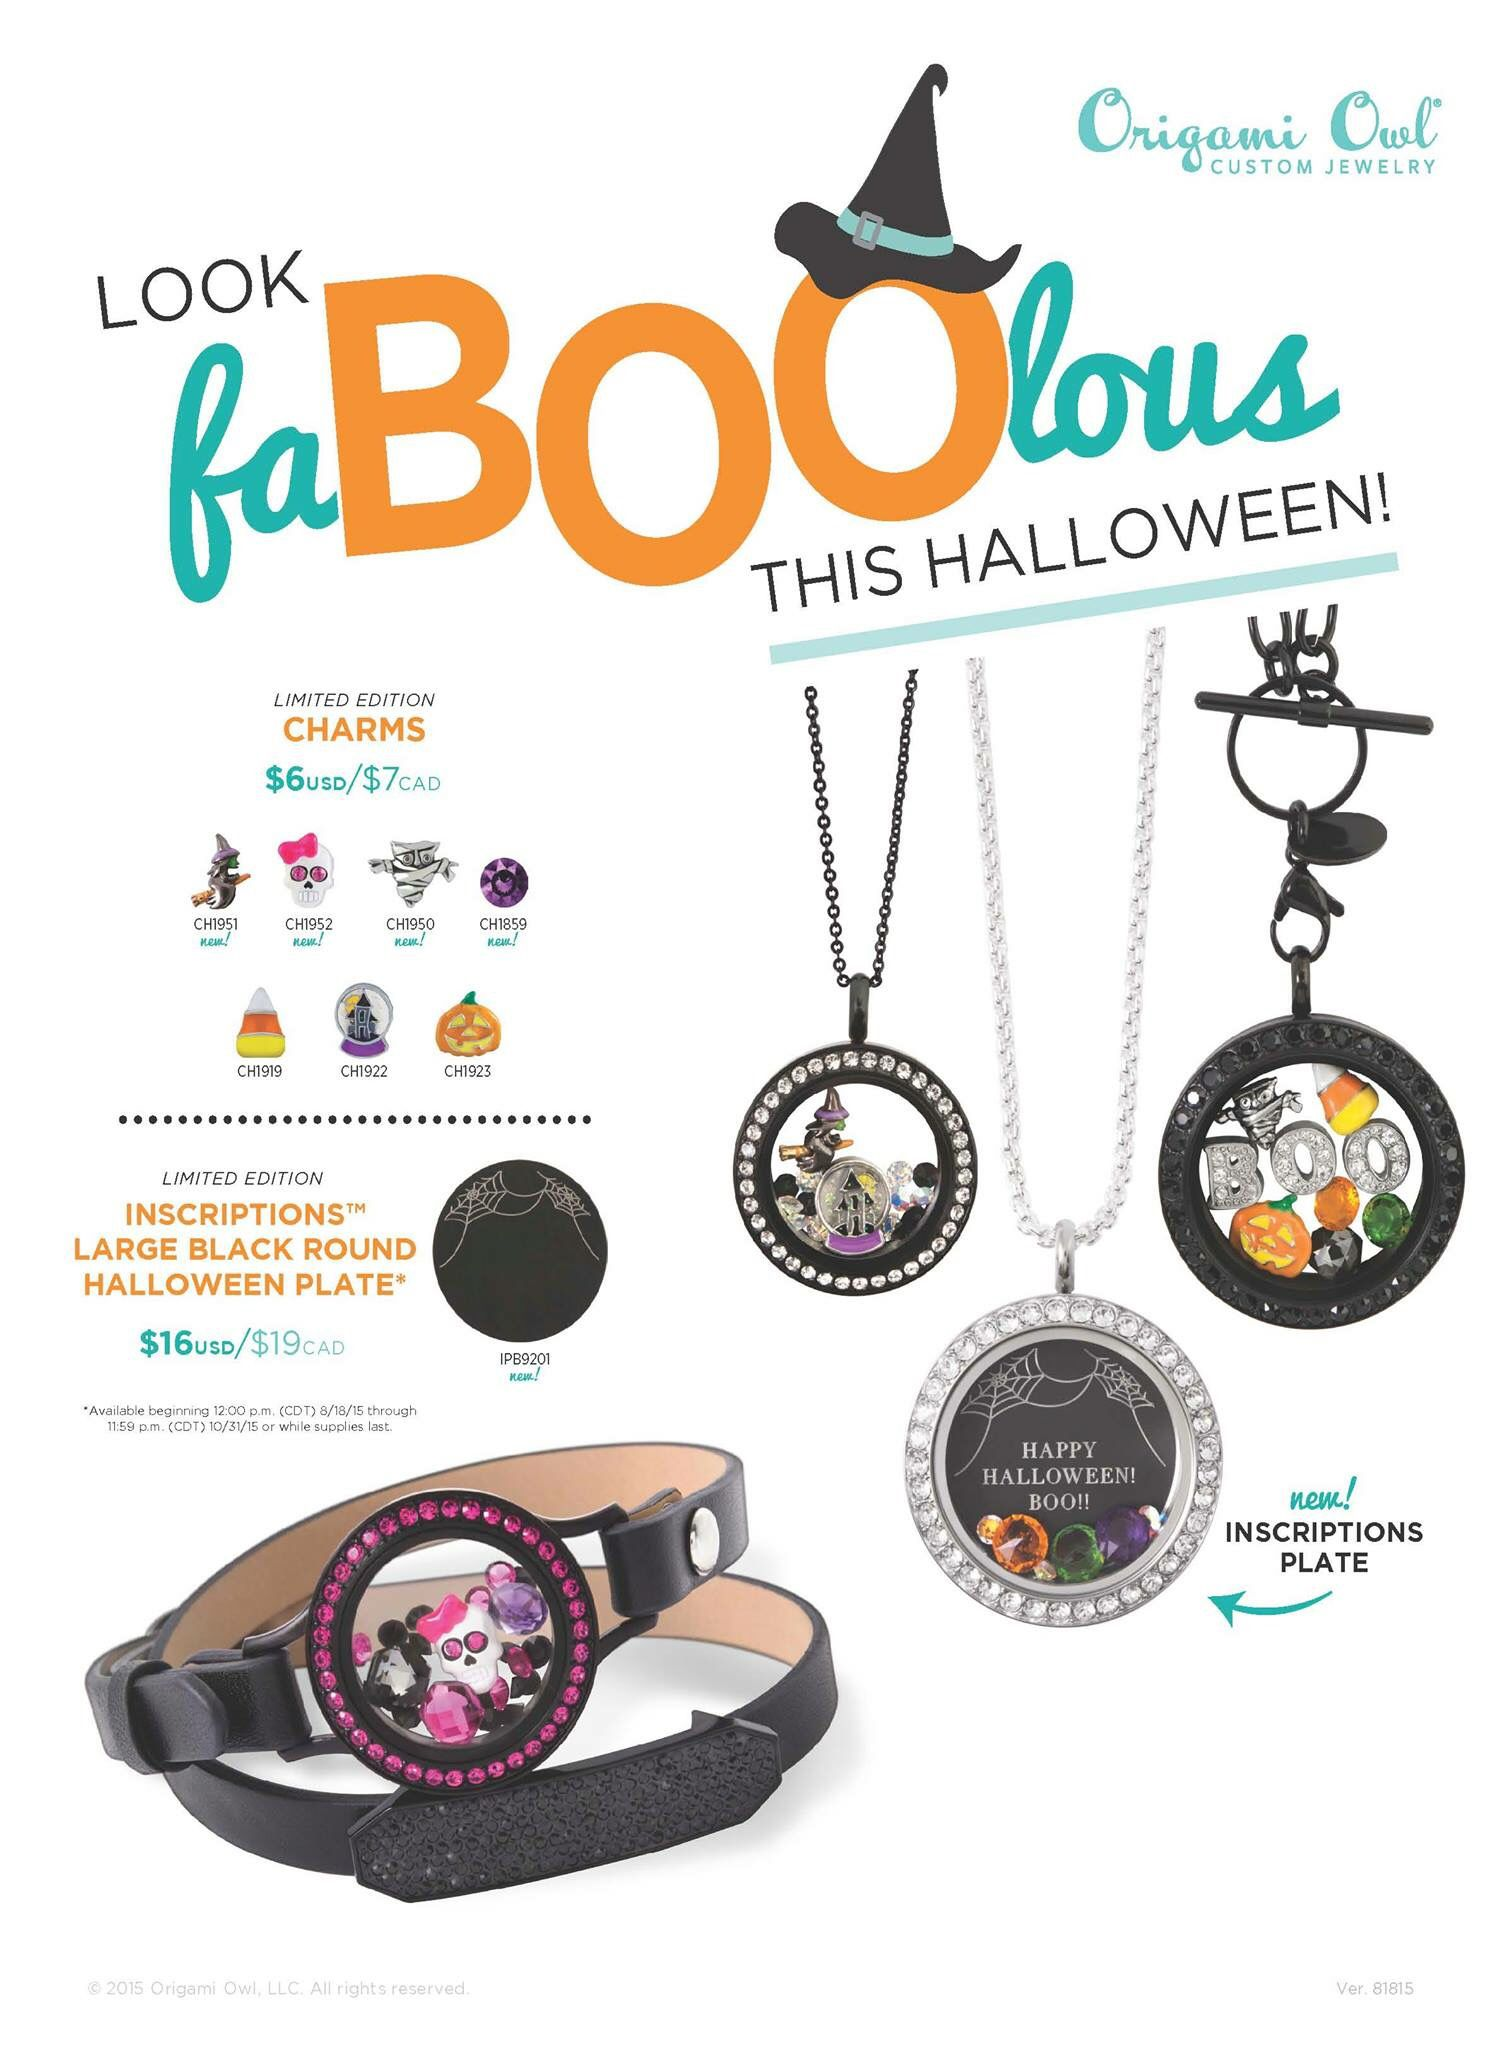 Check out our #HalloweenCharms and the #LargeBlackInscriptionsPlate #Halloween #TwistLocket #WrapBracelet #CharmedLife #OrigamiOwl #Luvpam luvpam.origamiowl.com